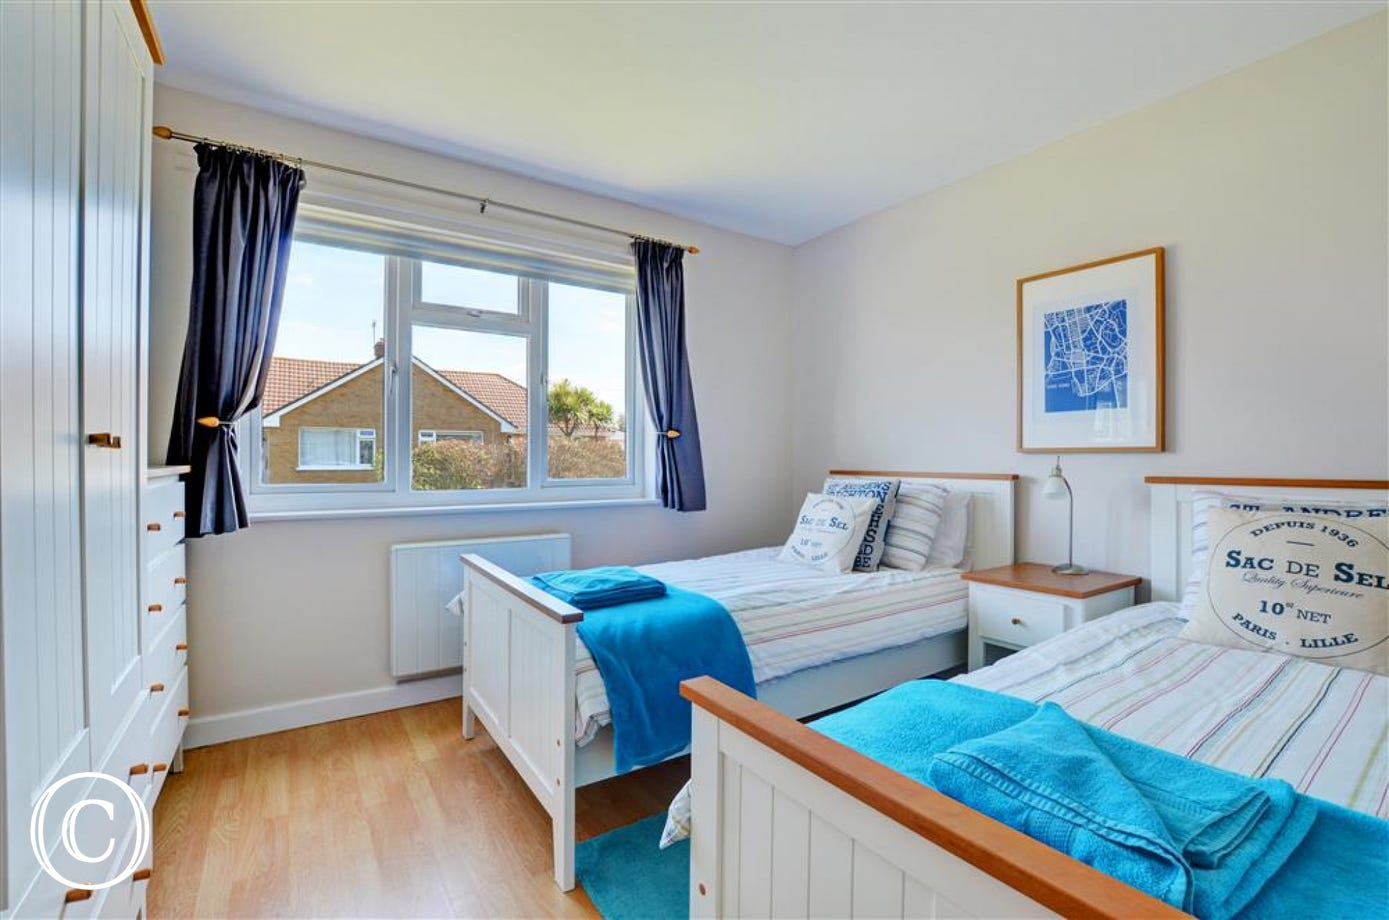 The twin room has a seaside feel